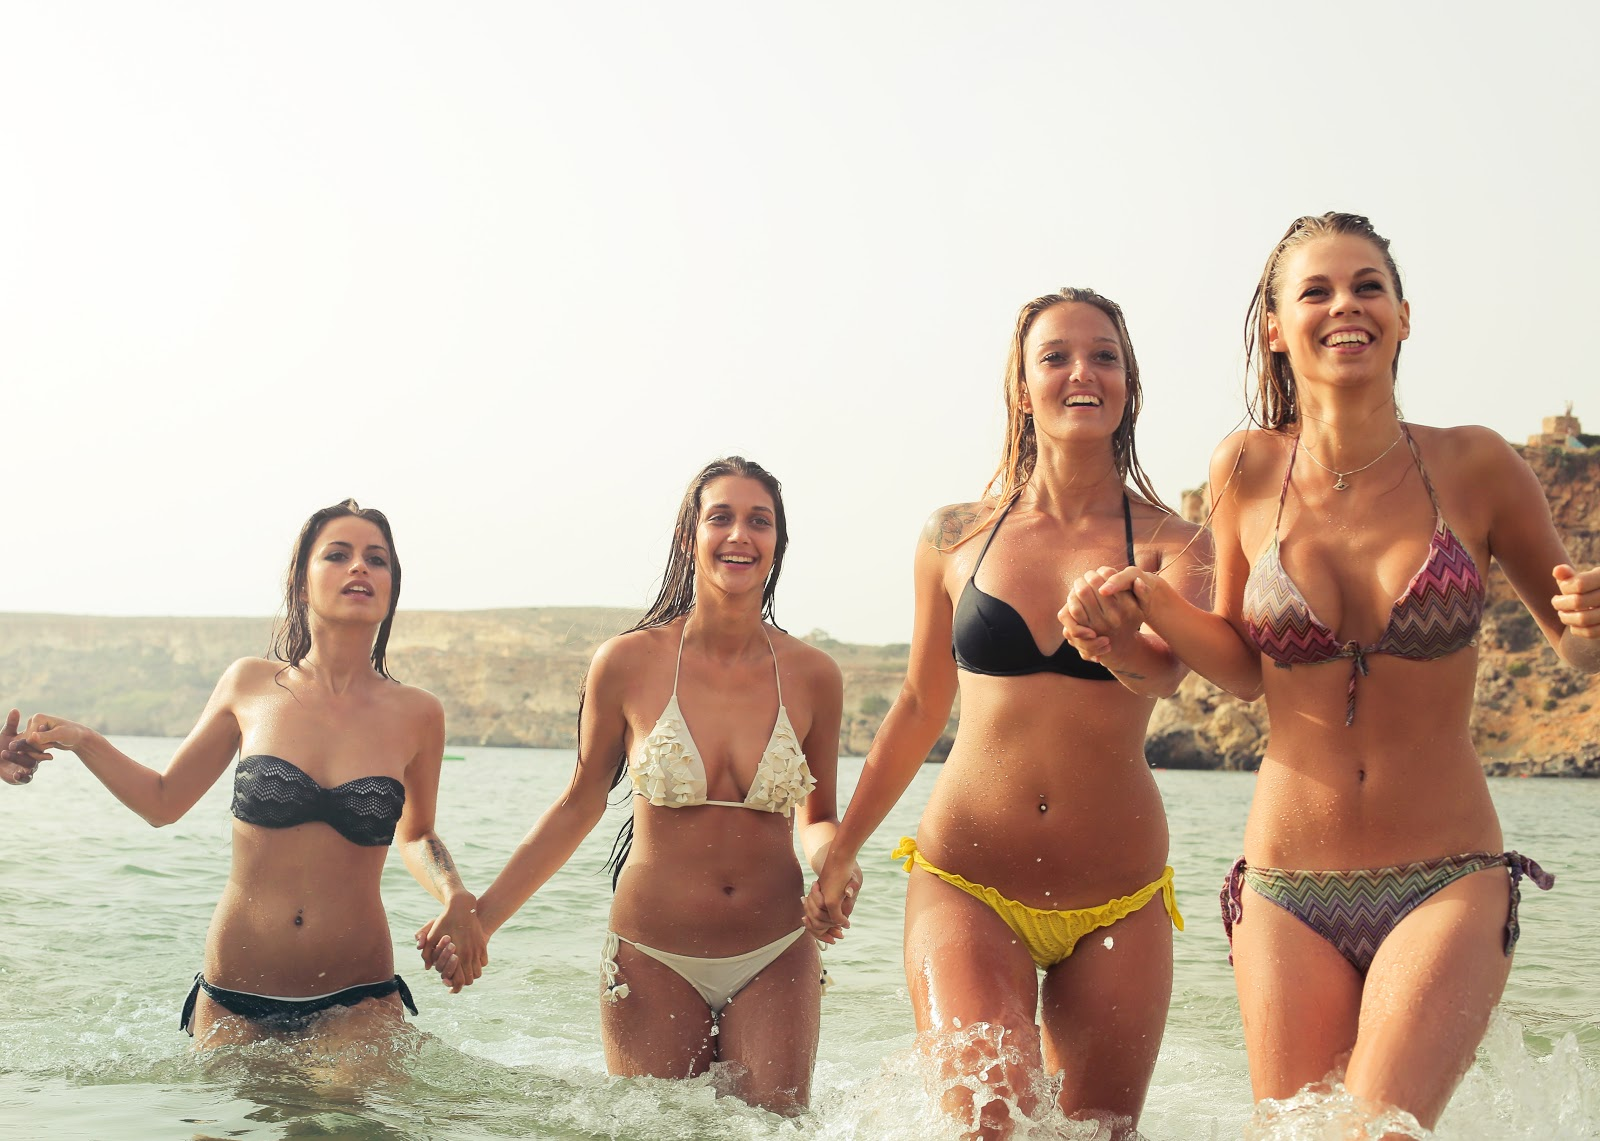 Spray tans vs sun baking: making the healthy choice